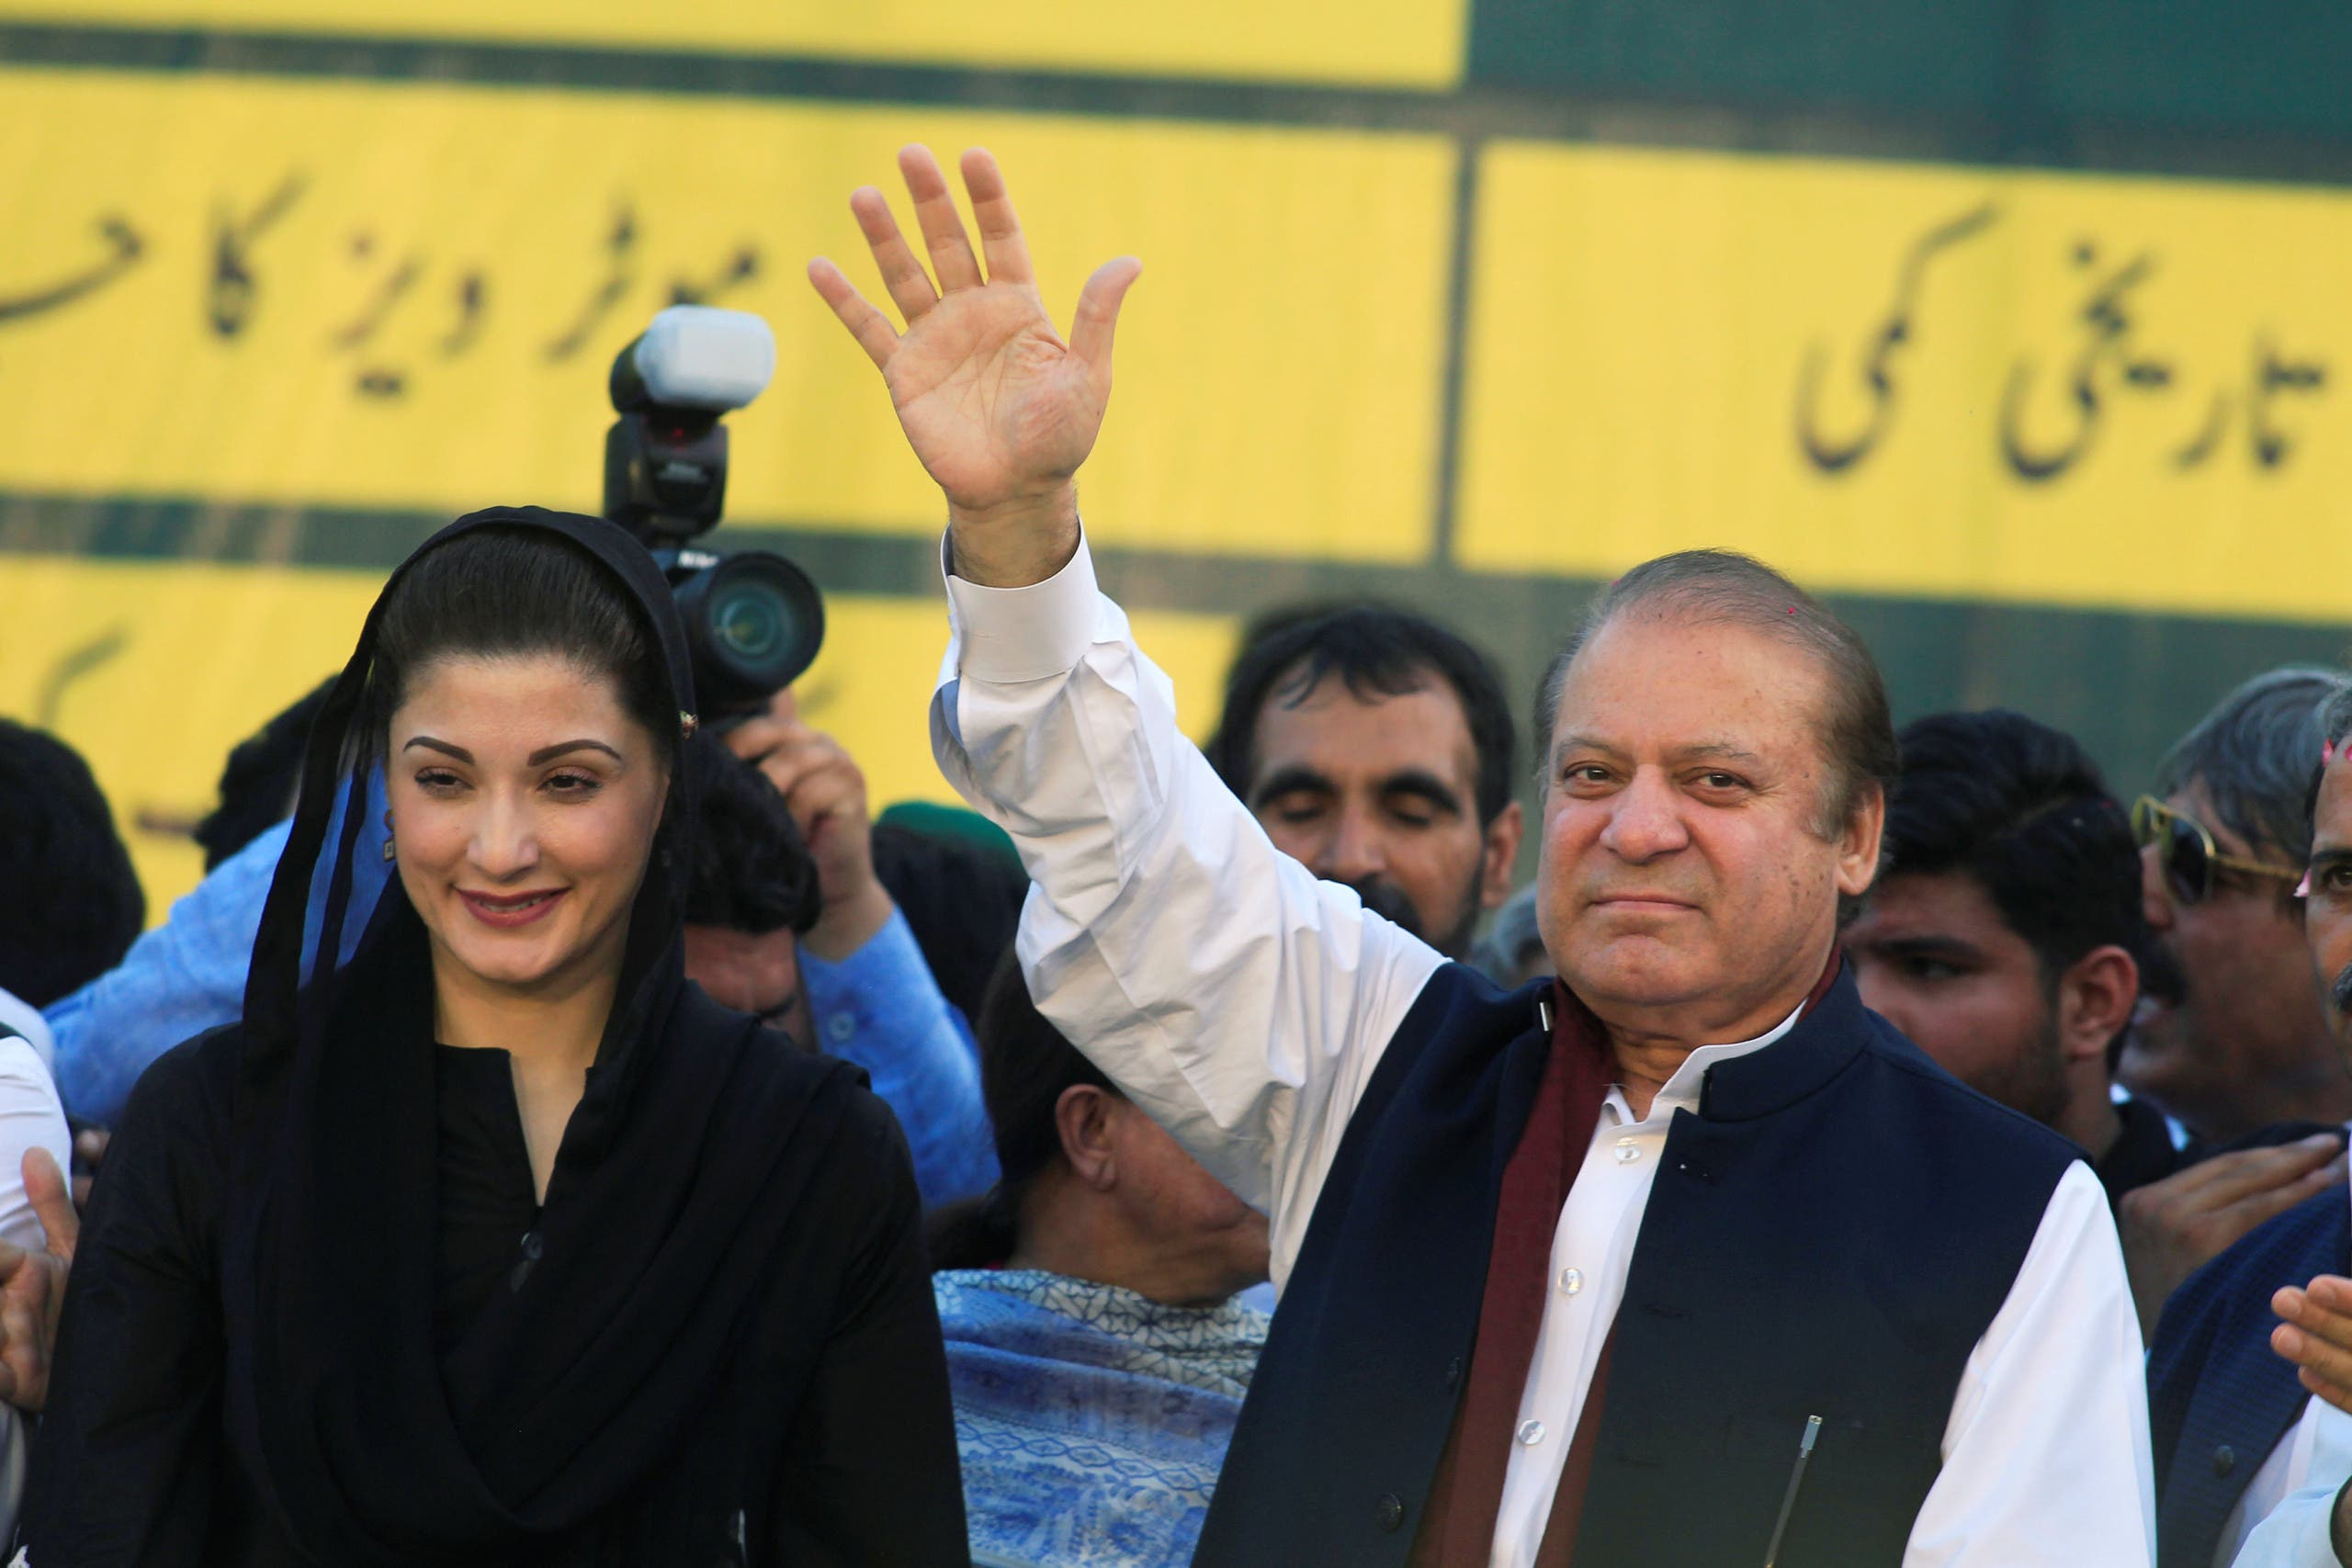 Nawaz Sharif (R), former Prime Minister and leader of Pakistan Muslim League, gestures to supporters as his daughter Maryam Nawaz looks on during party's workers convention in Islamabad on June 4, 2018. (Reuters)